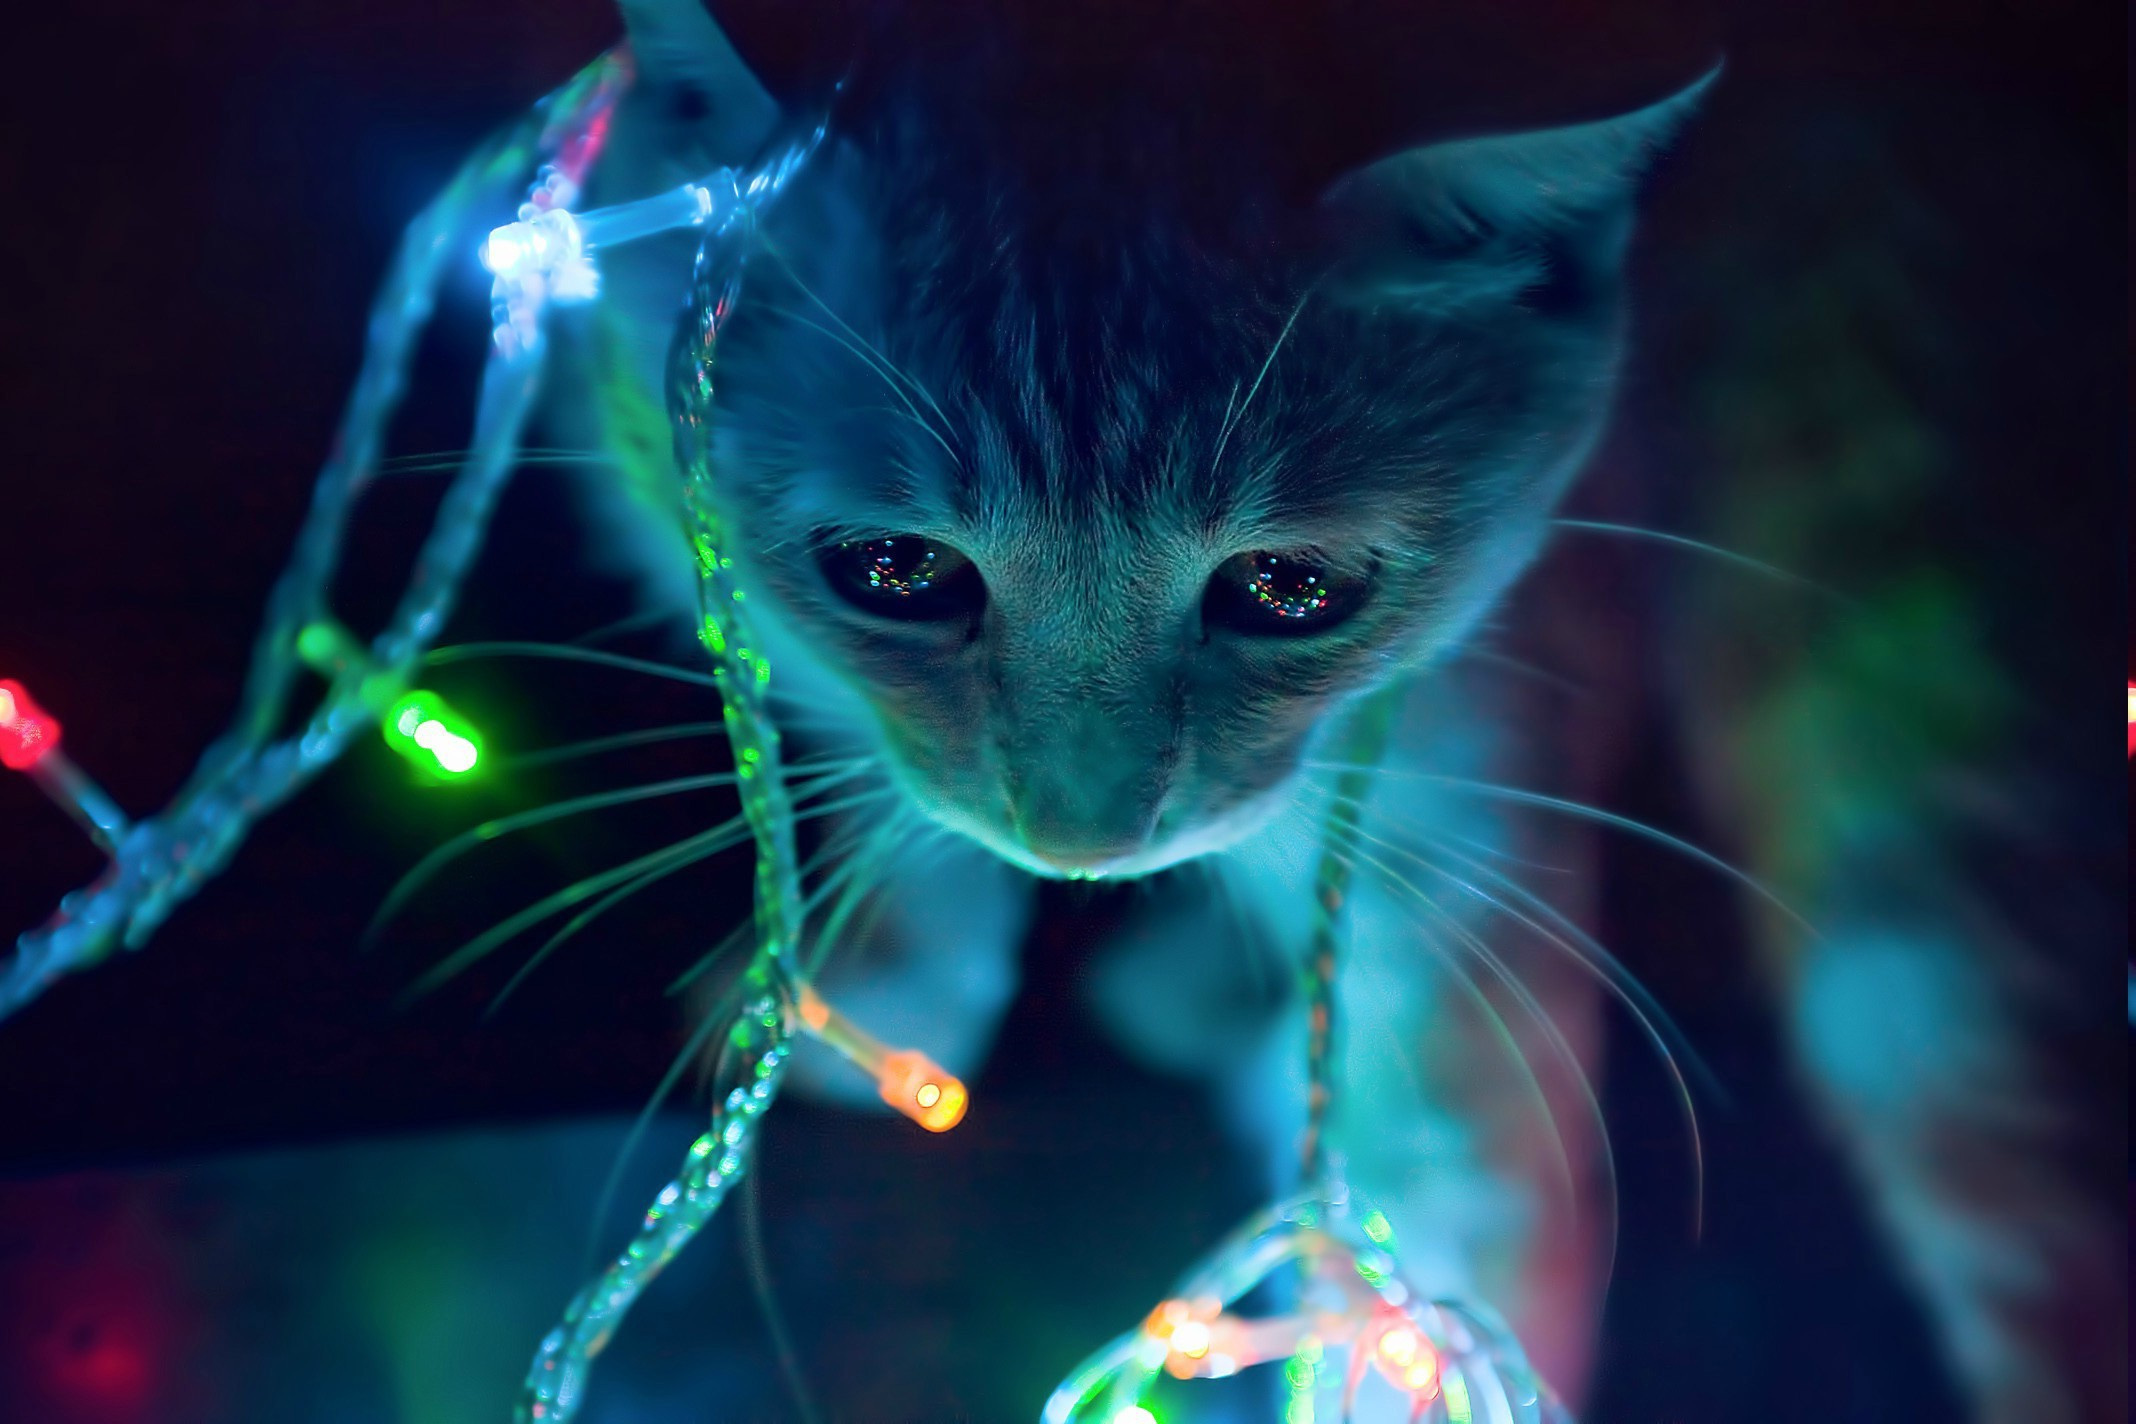 Christmas lights wallpaper download free cool full hd - Anime cat wallpaper ...